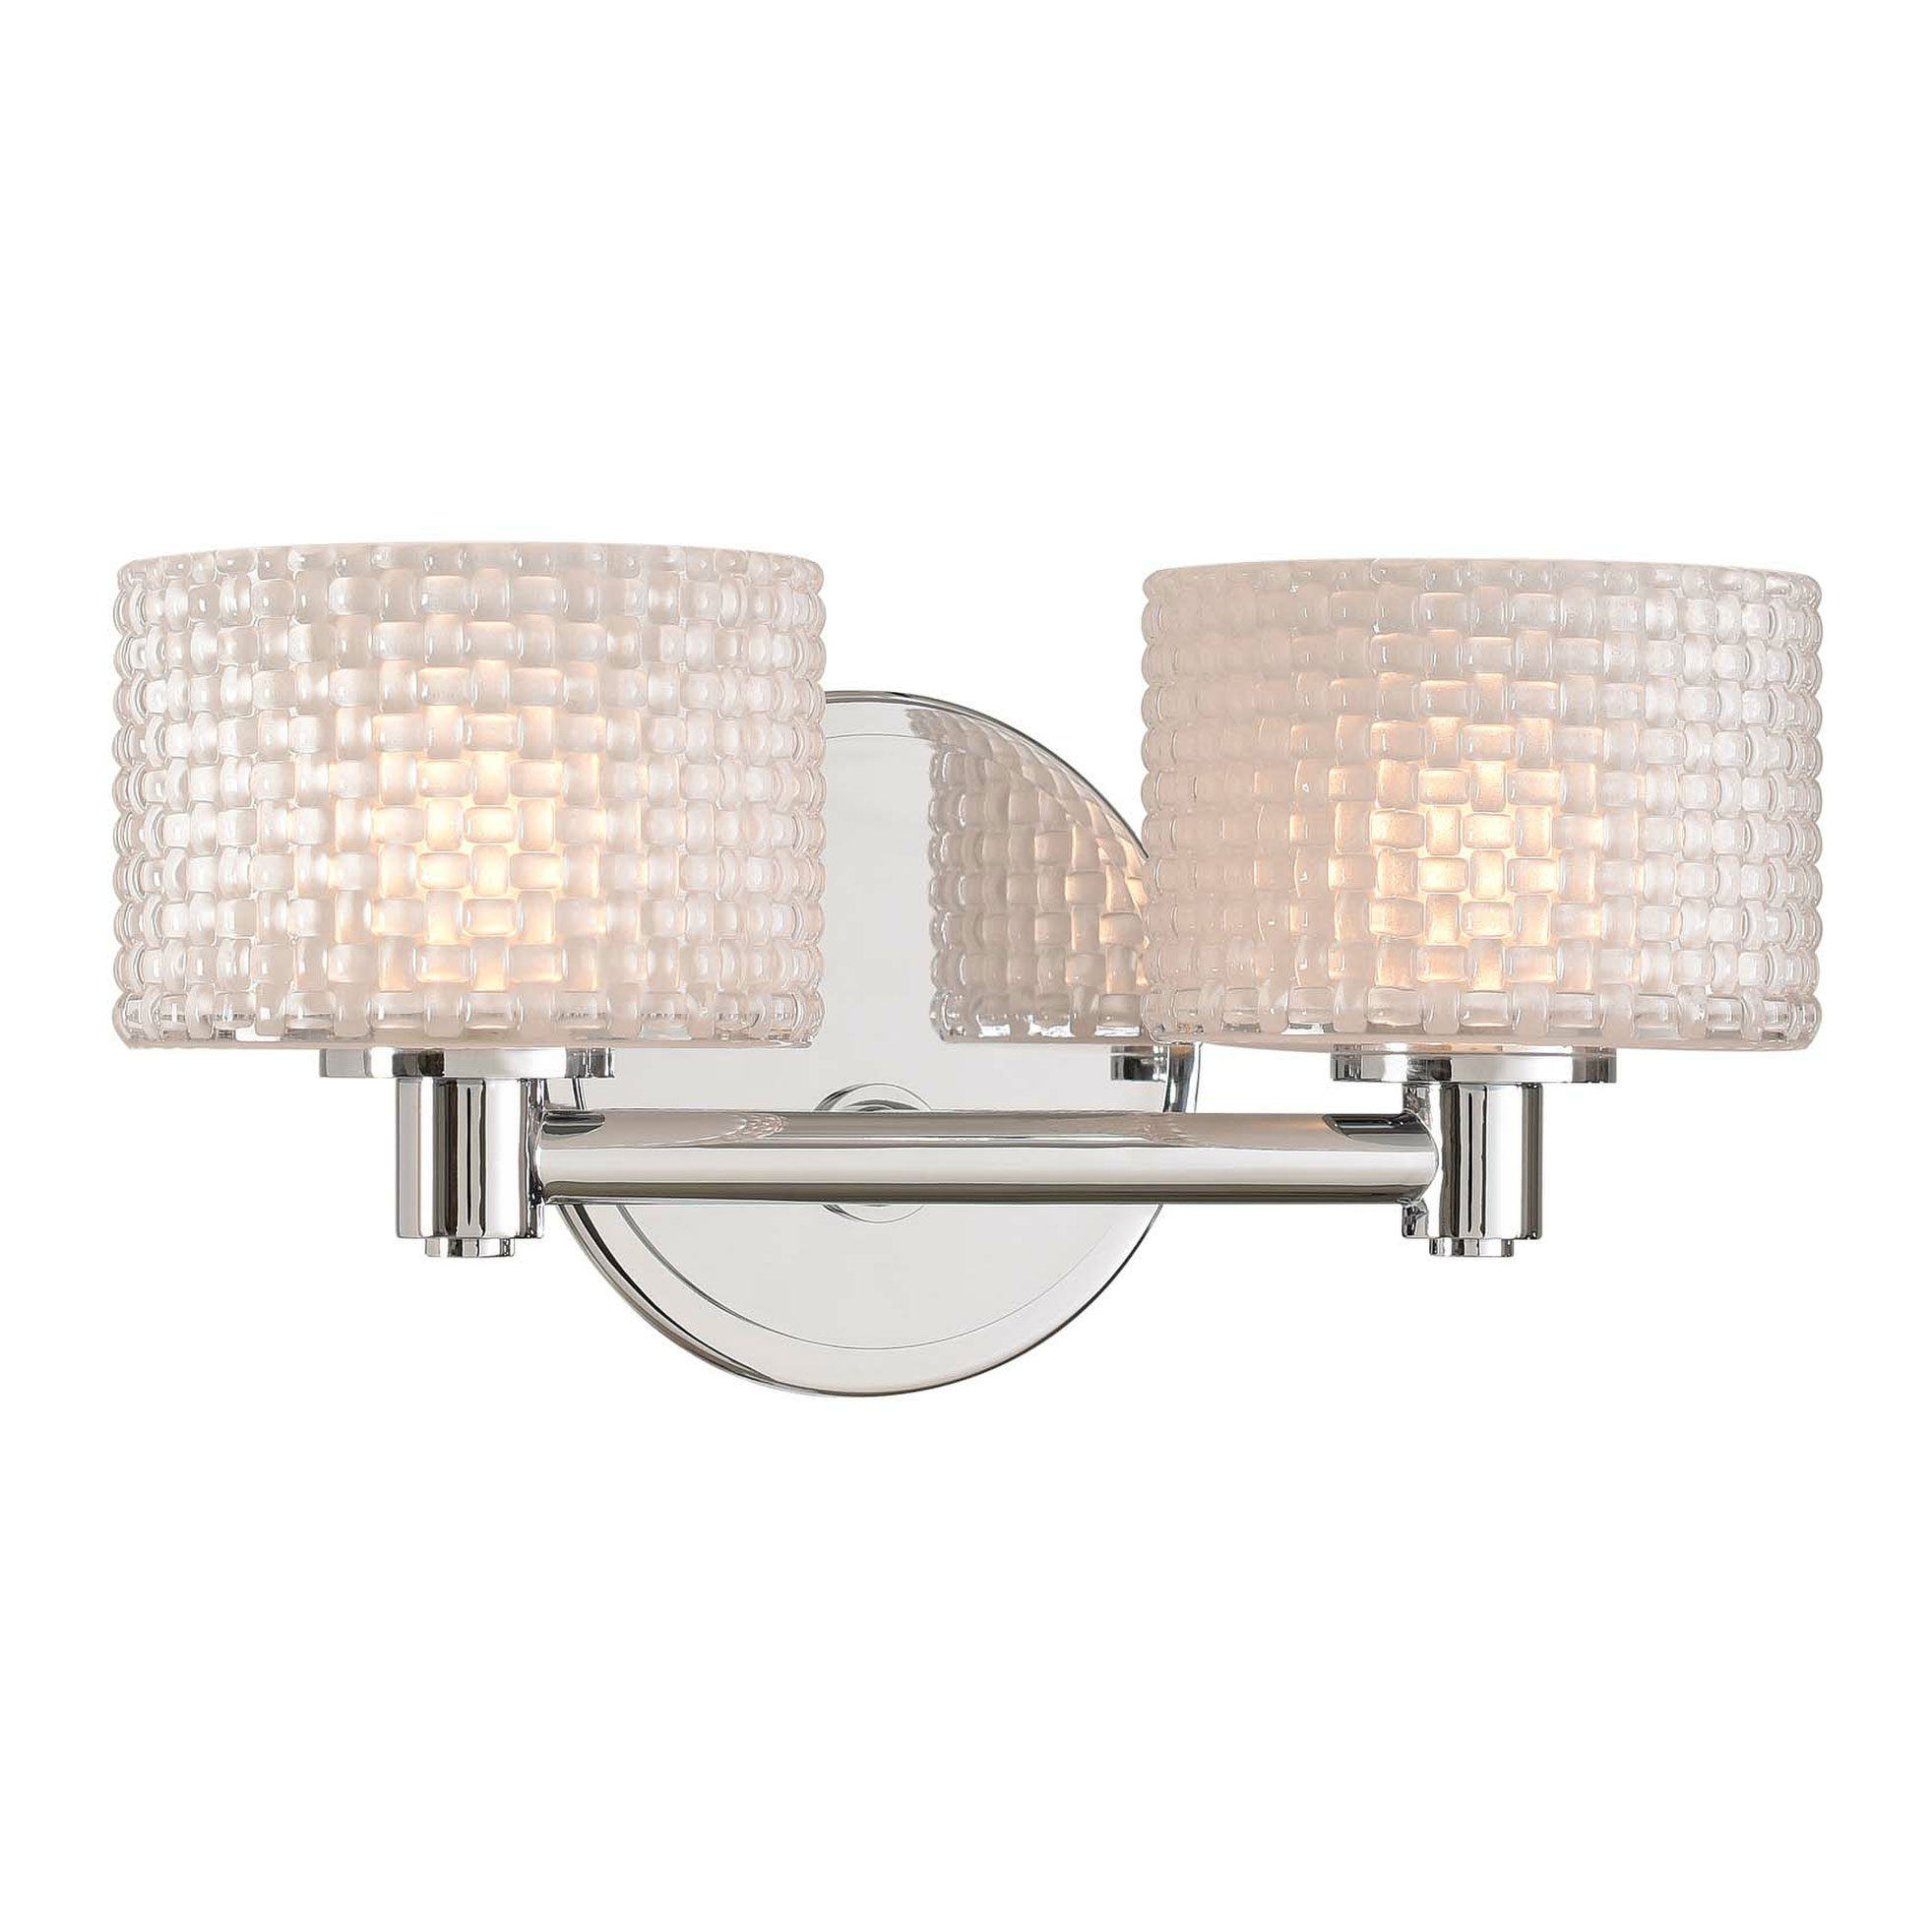 Willow Bathroom Vanity Light By Kalco 315532ch